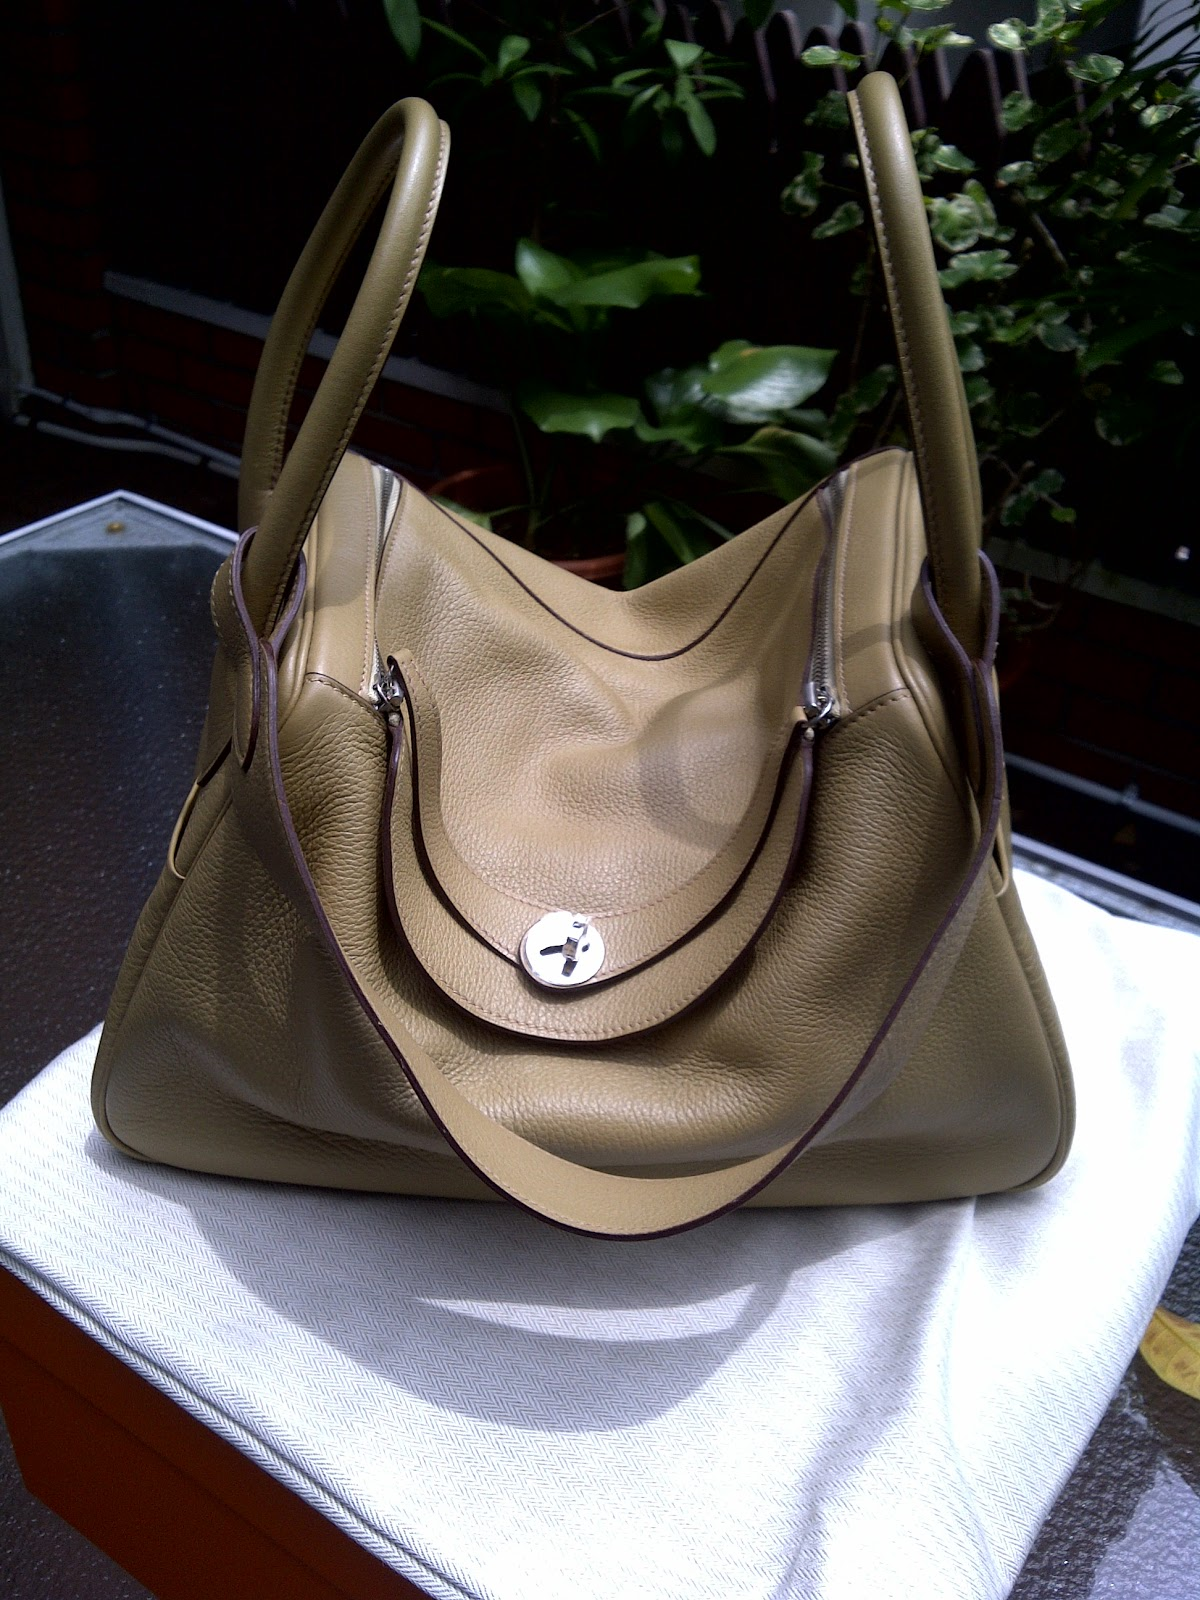 hermes kelly bag replica - Exquisite Boutique: Hermes Lindy Parchemin size 34 in Clemence ...